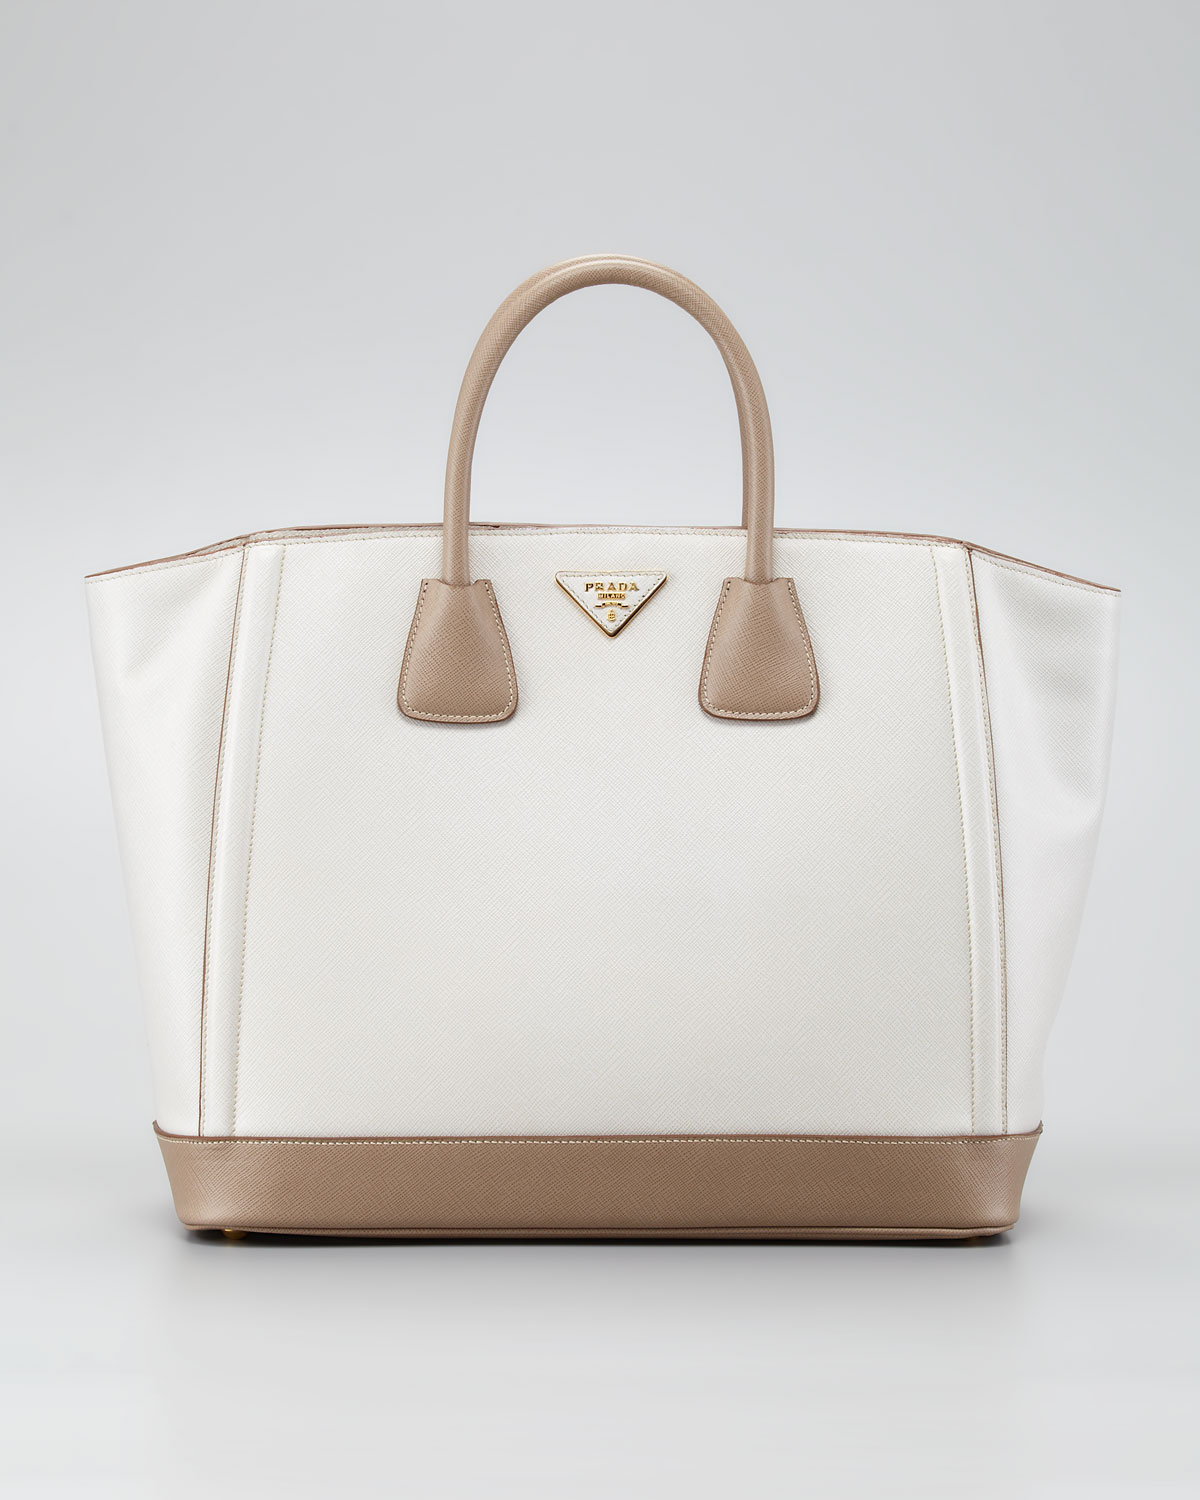 6f3725bfe0ac Prada Saffiano Large Bicolor Tote Bag in Natural - Lyst